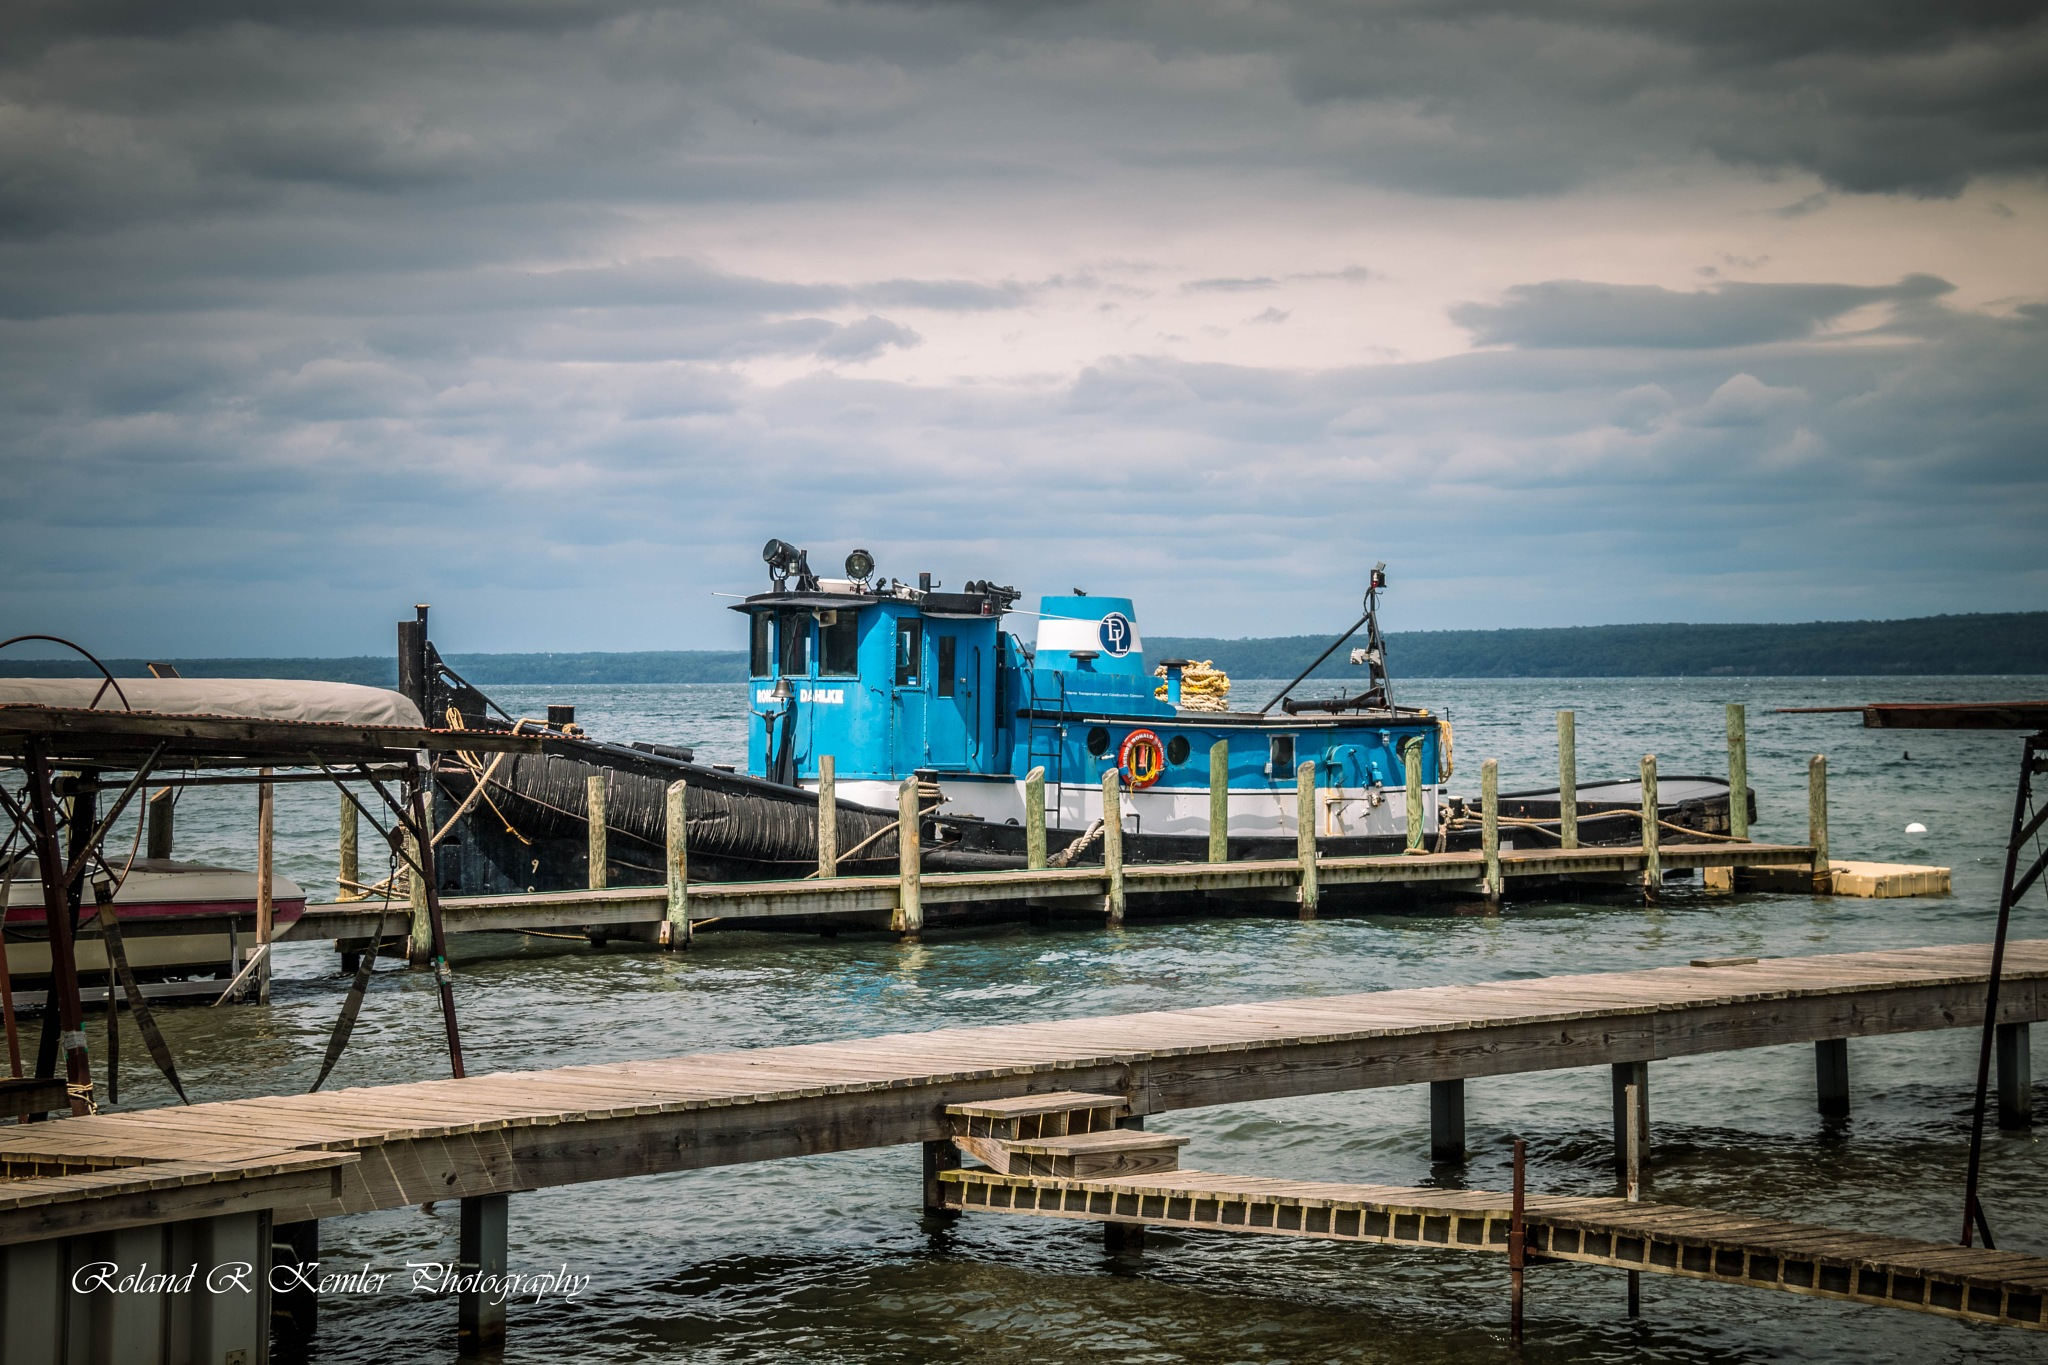 Fishing boat on Seneca lake by Roland R Kemler